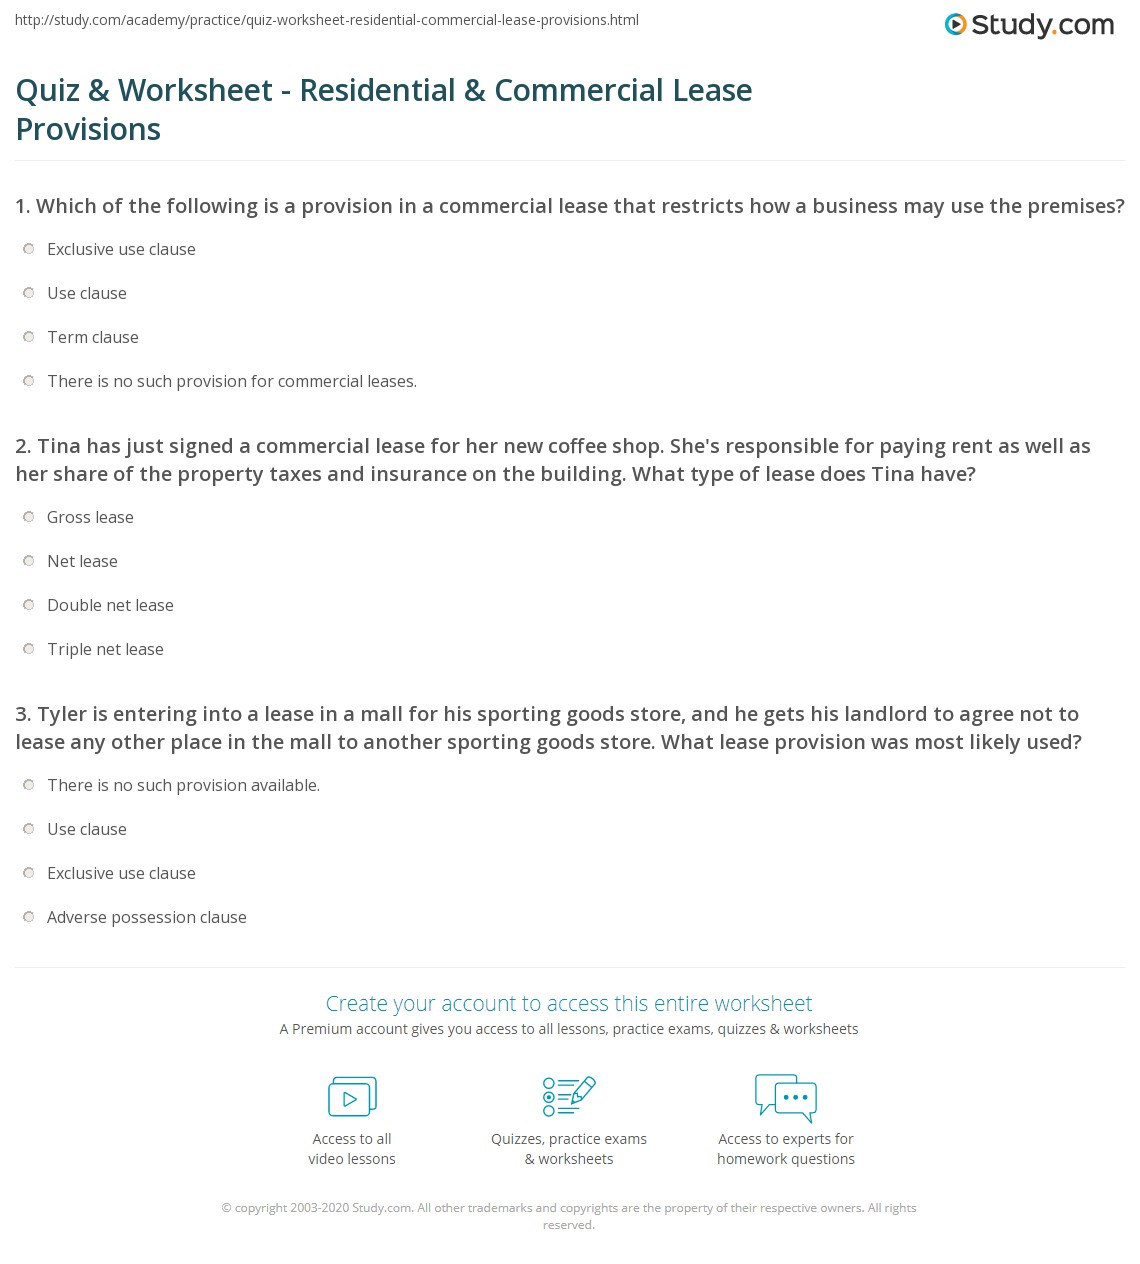 worksheet Lease Worksheet quiz worksheet residential commercial lease provisions study com tina has just signed a for her new coffee shop shes responsible paying rent as well share of the